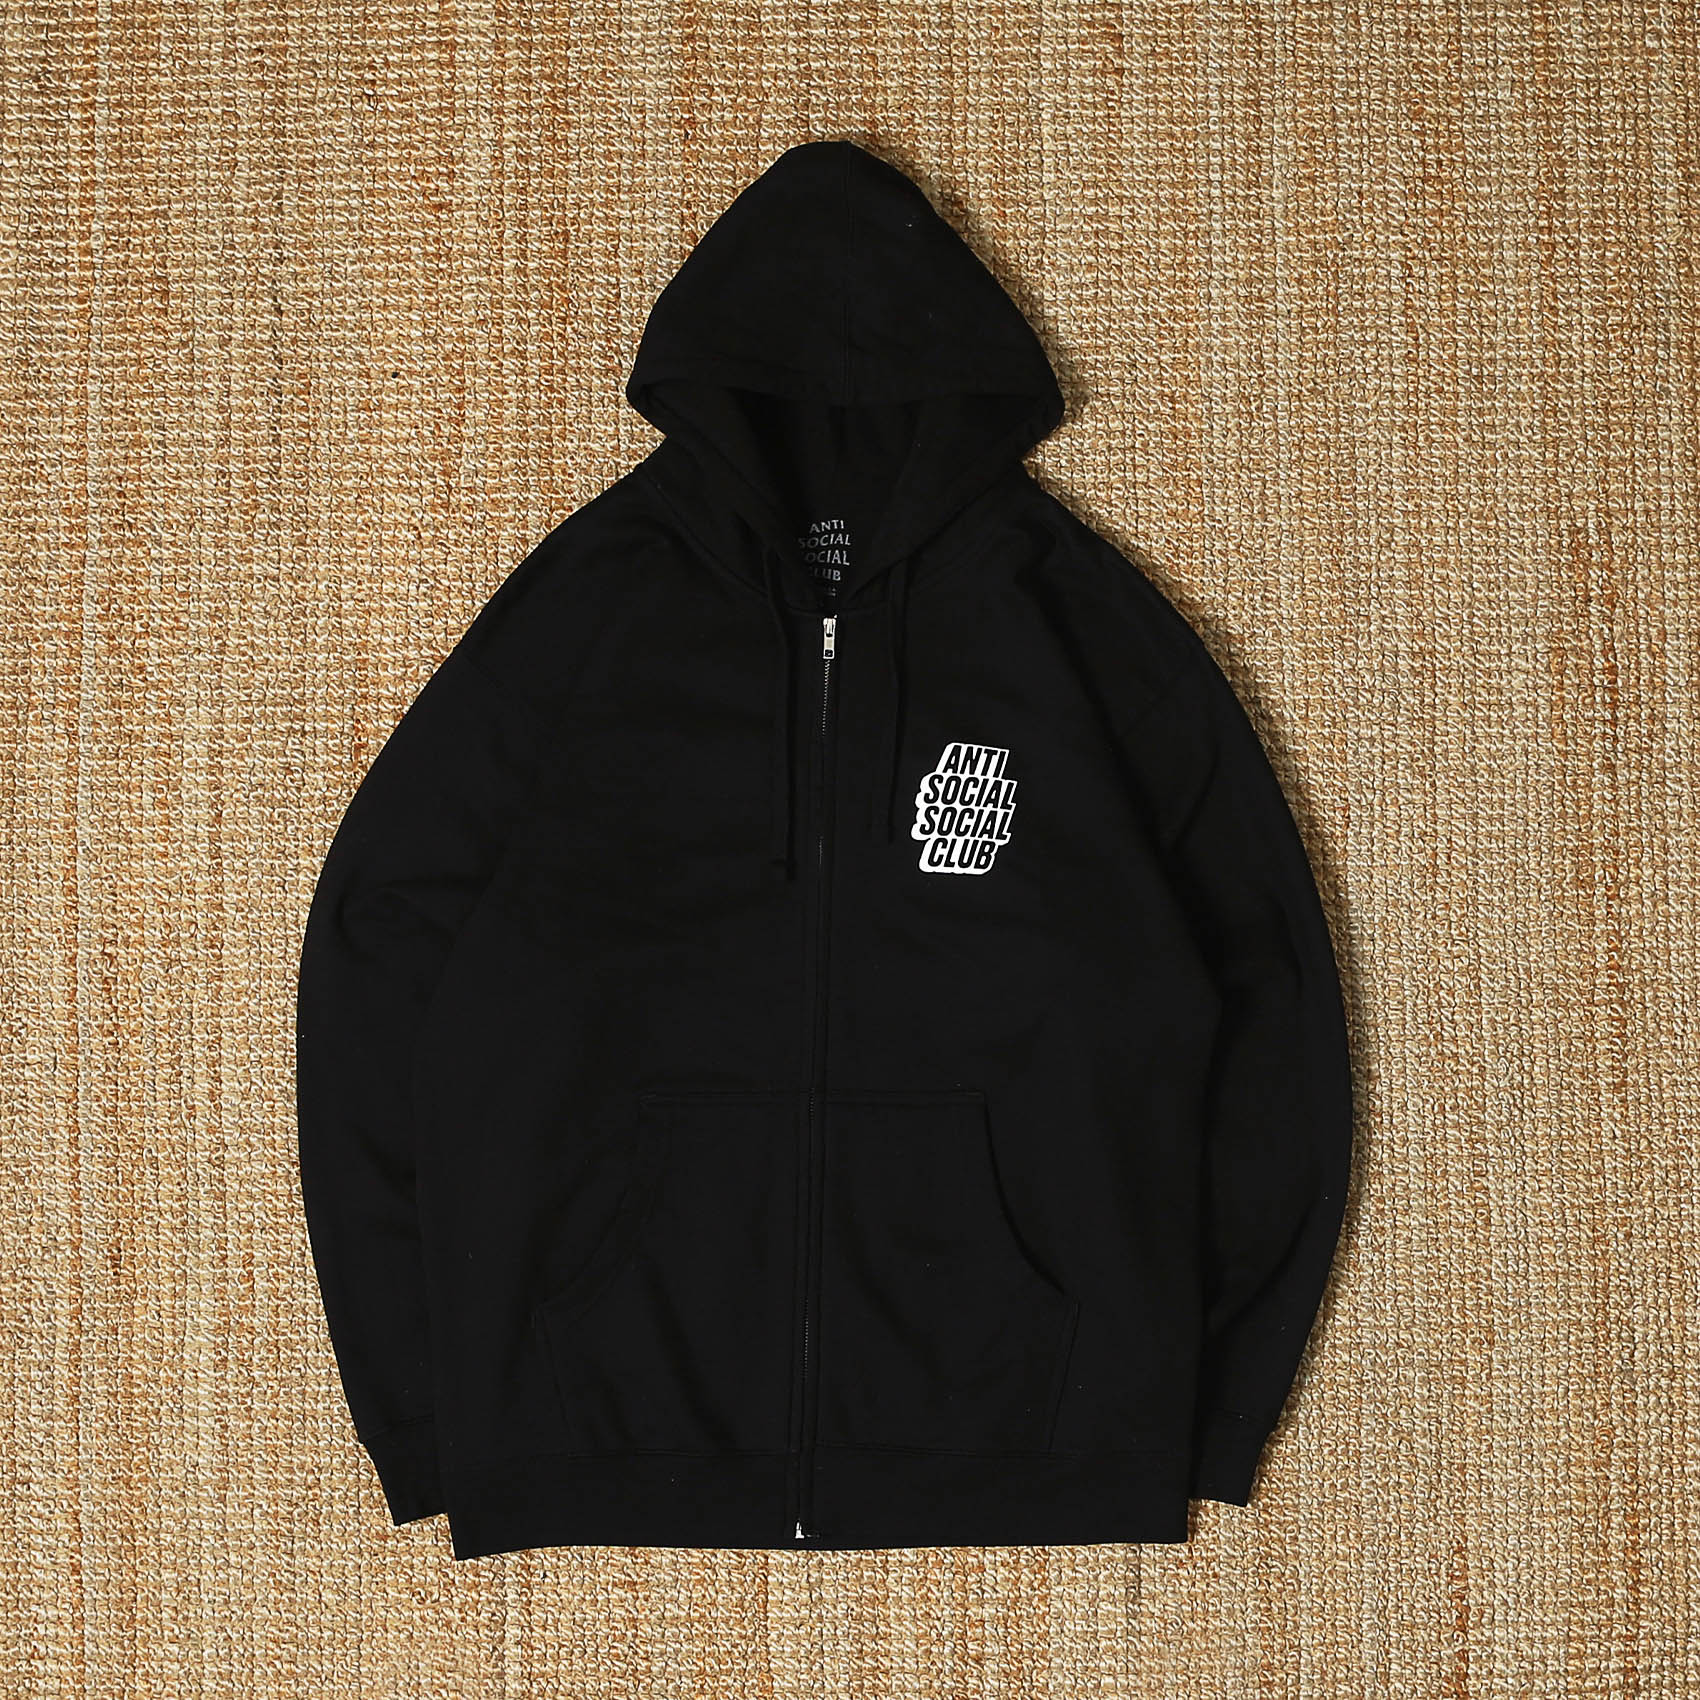 ANTI SOCIAL CLUB HOOD ZIP - BLACK